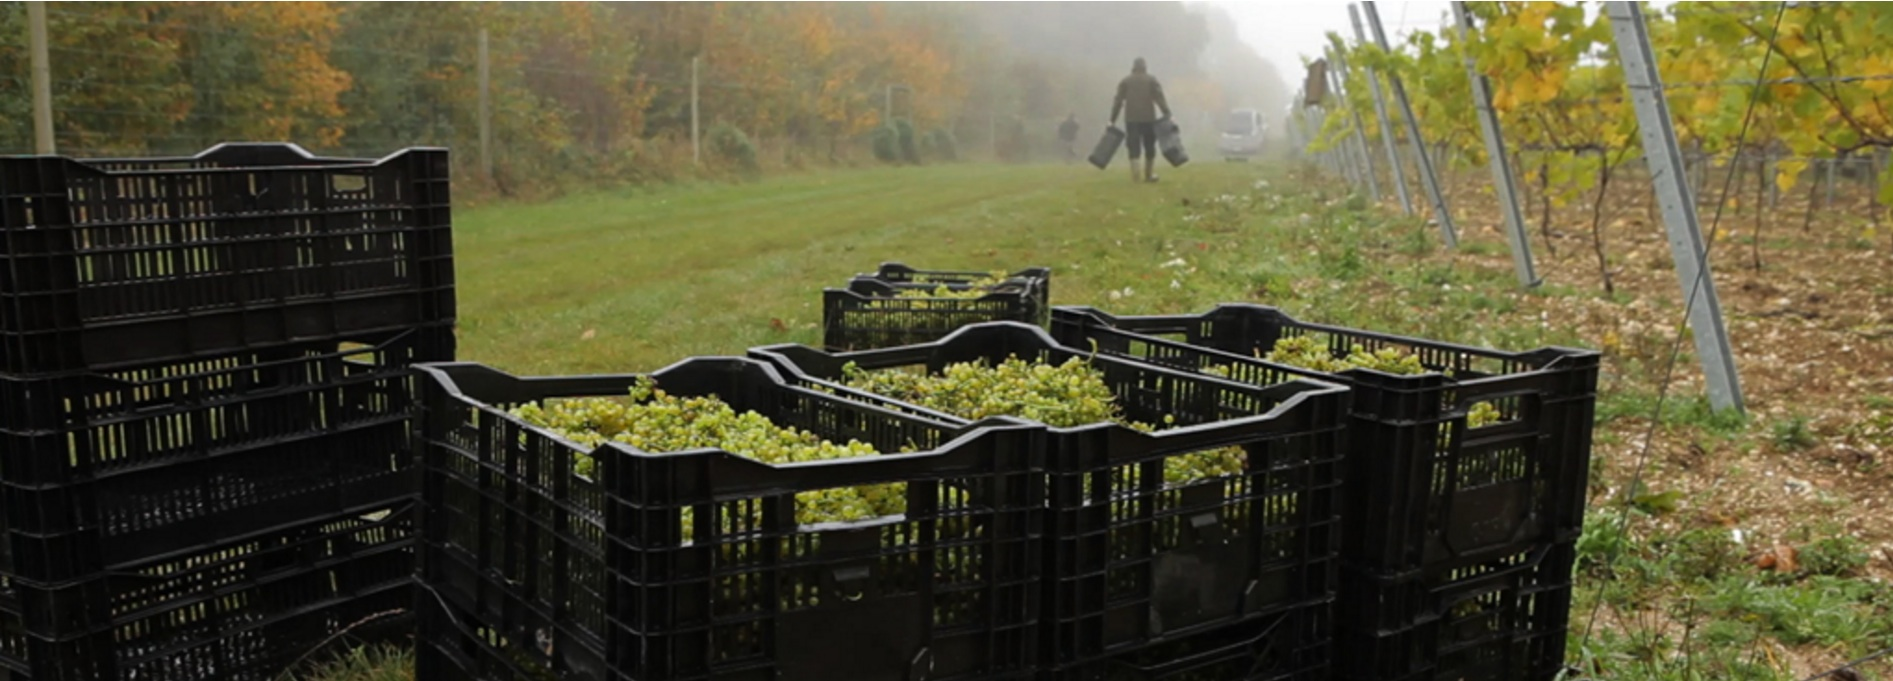 Hattingley Valley Grape Harvest